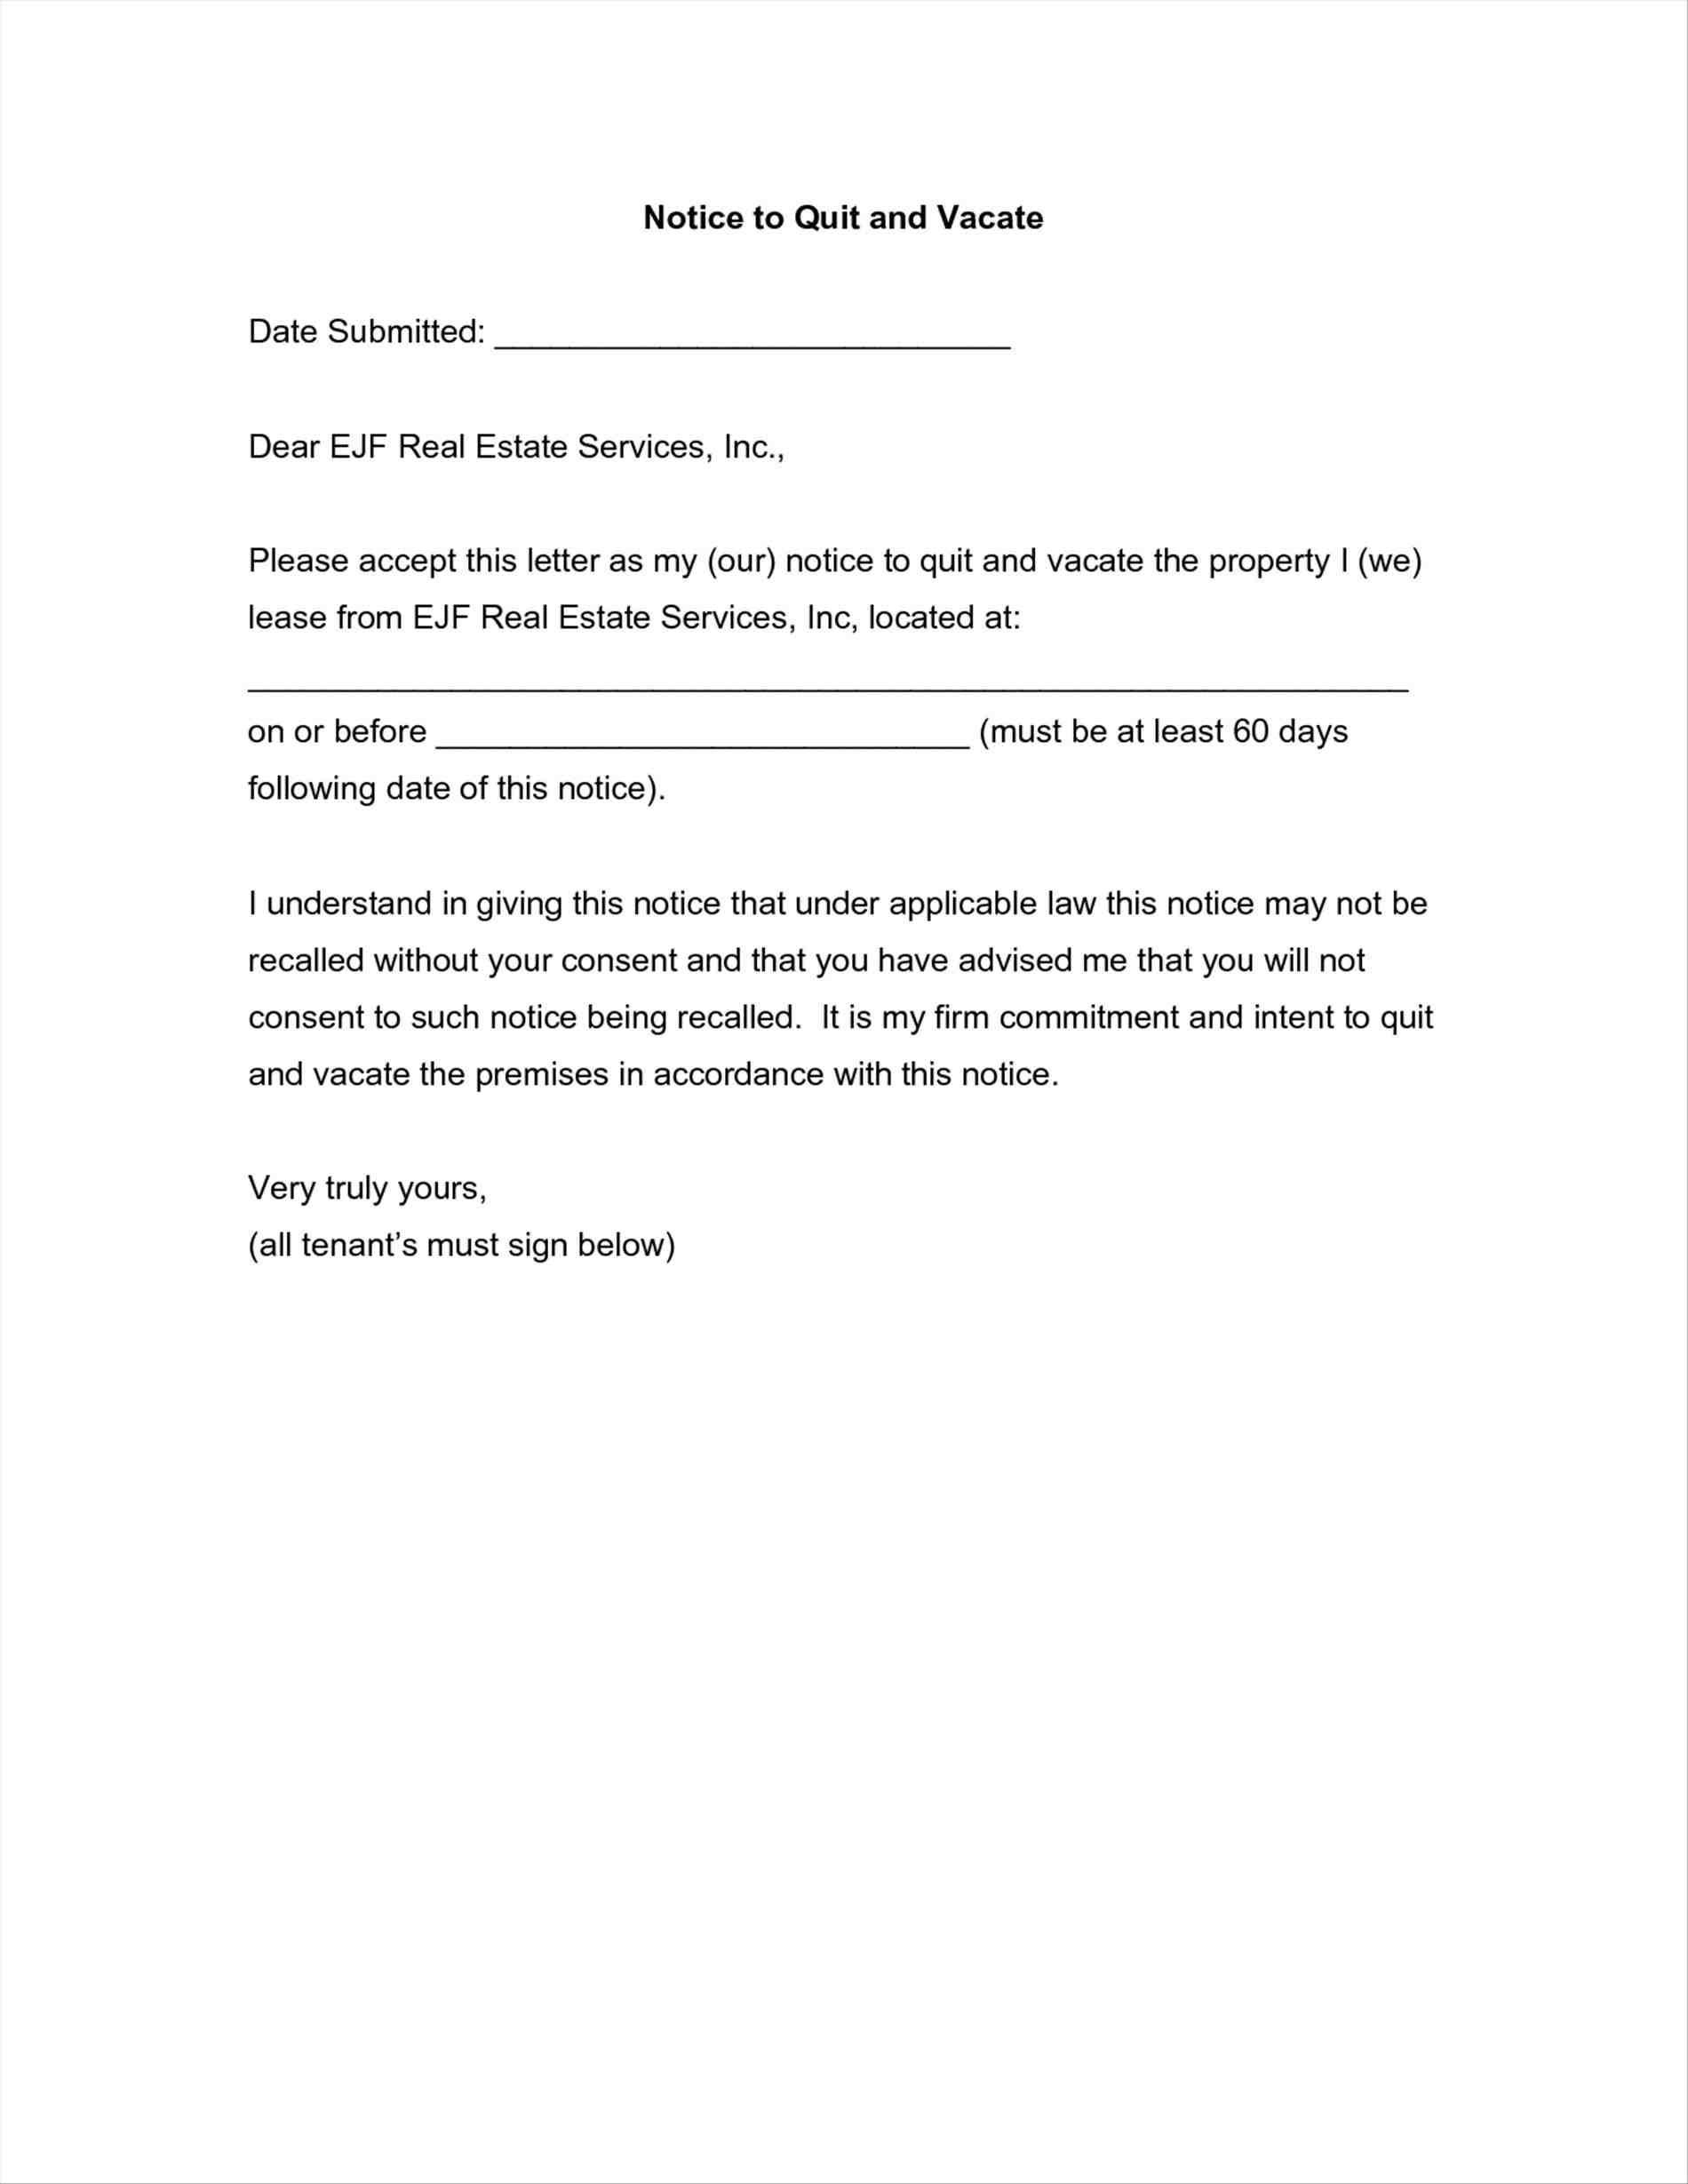 notice to vacate apartment letter template Collection-Letter Template For Giving Notice Flat New Pretty 60 Day 15-a